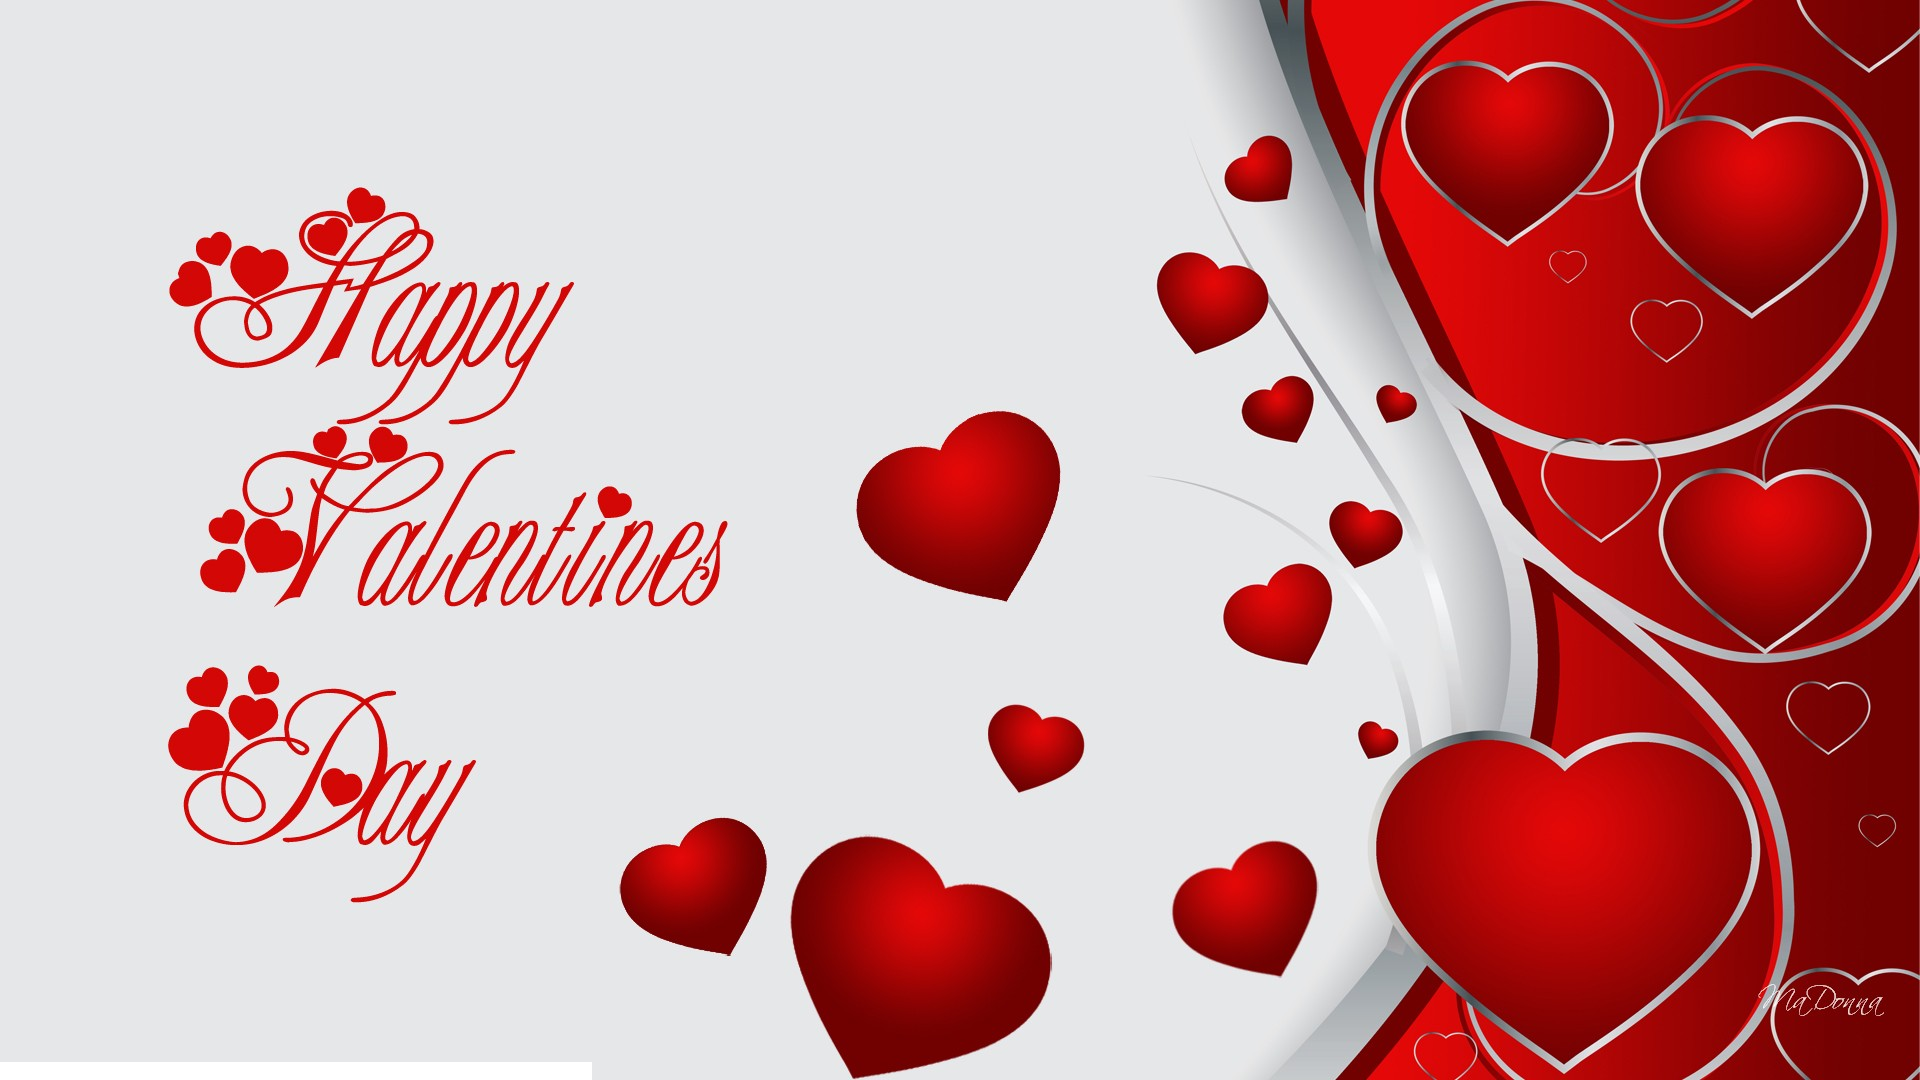 Valentines Day Wallpapers   Top Valentines Day Backgrounds 1920x1080